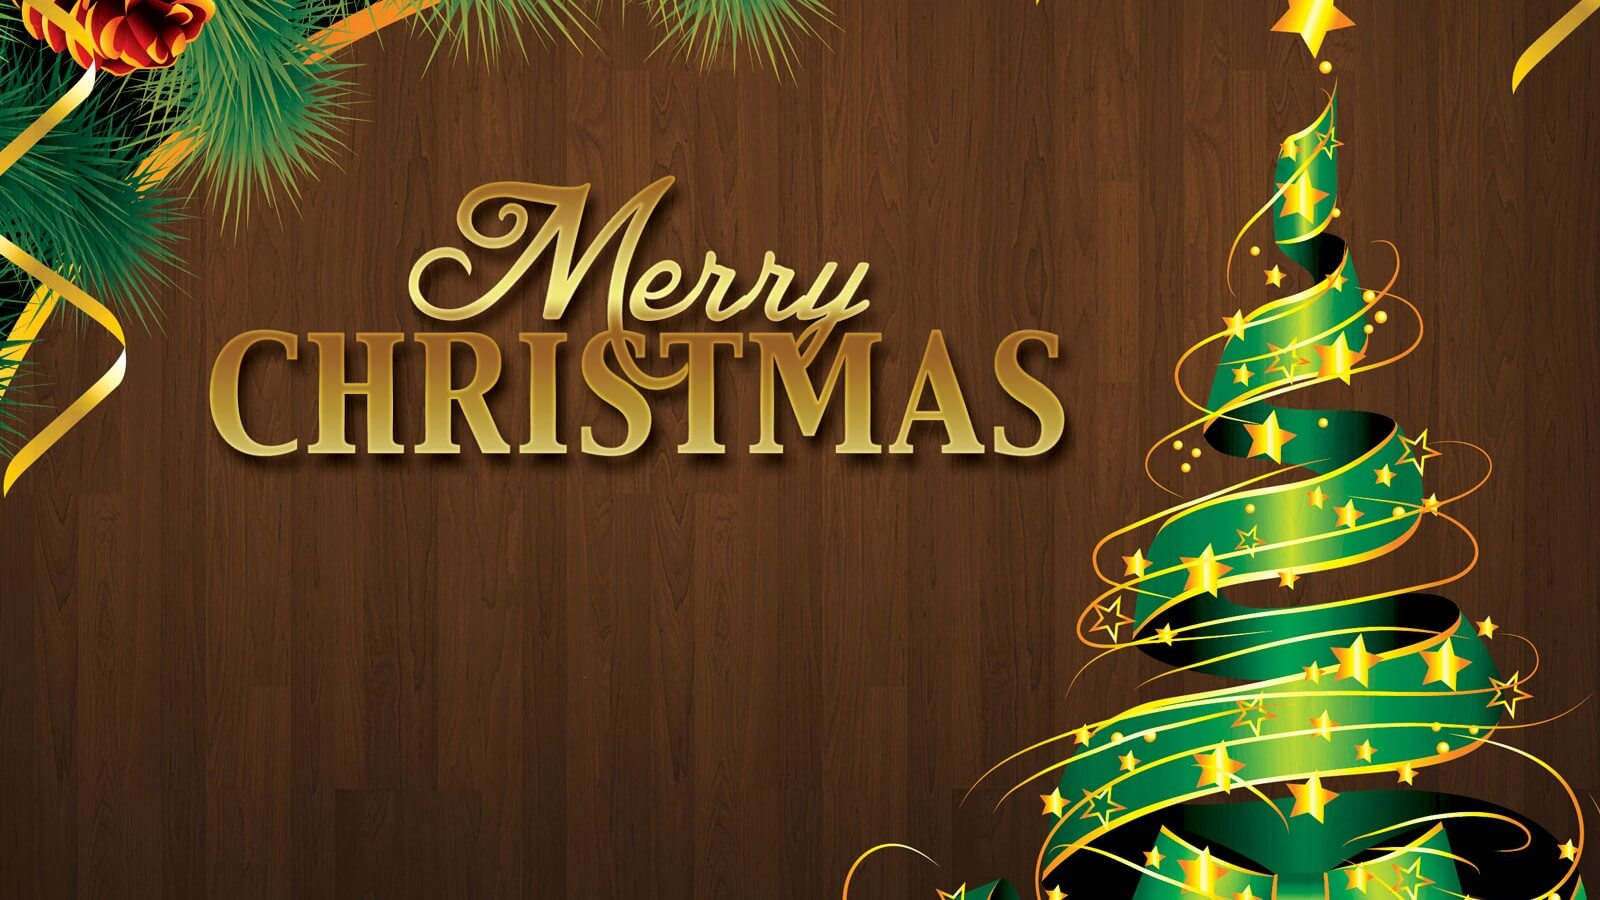 Merry Christmas Wishes 2017 Christmas 2017 Wishes For Friends